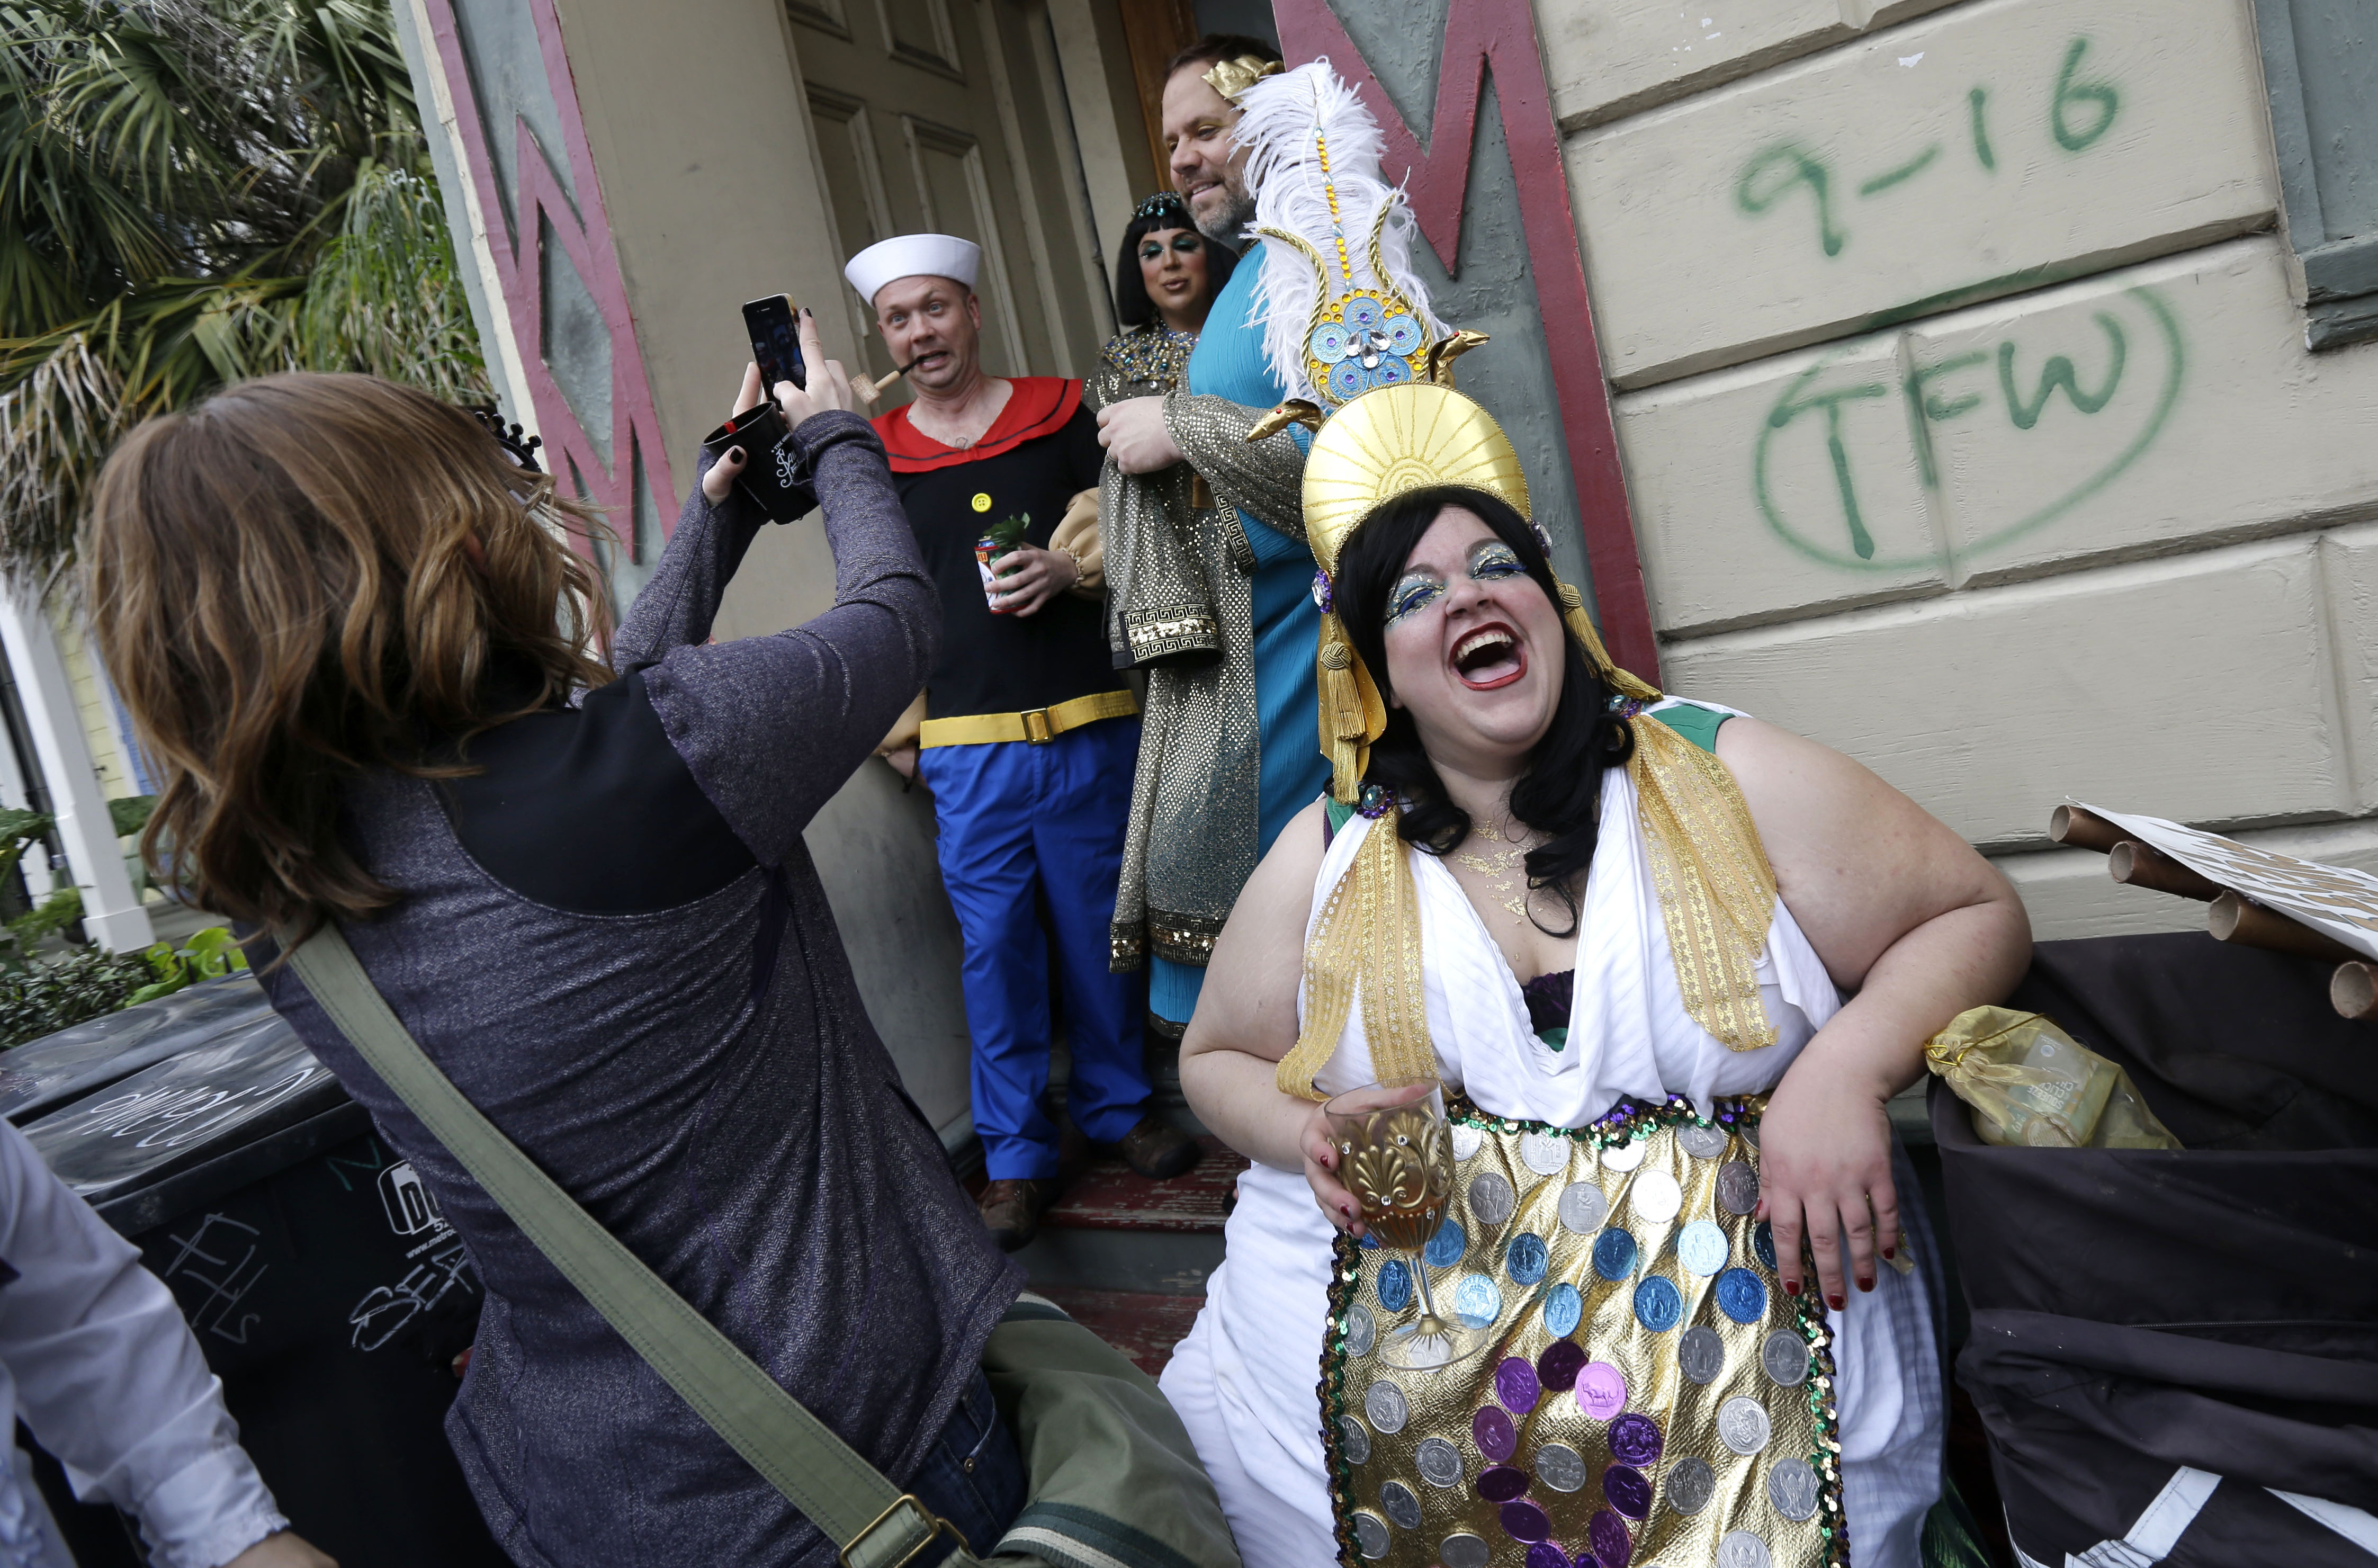 Revelers Gather For The Start Of The Society Of Saint Anne Walking Parade  In The Bywater